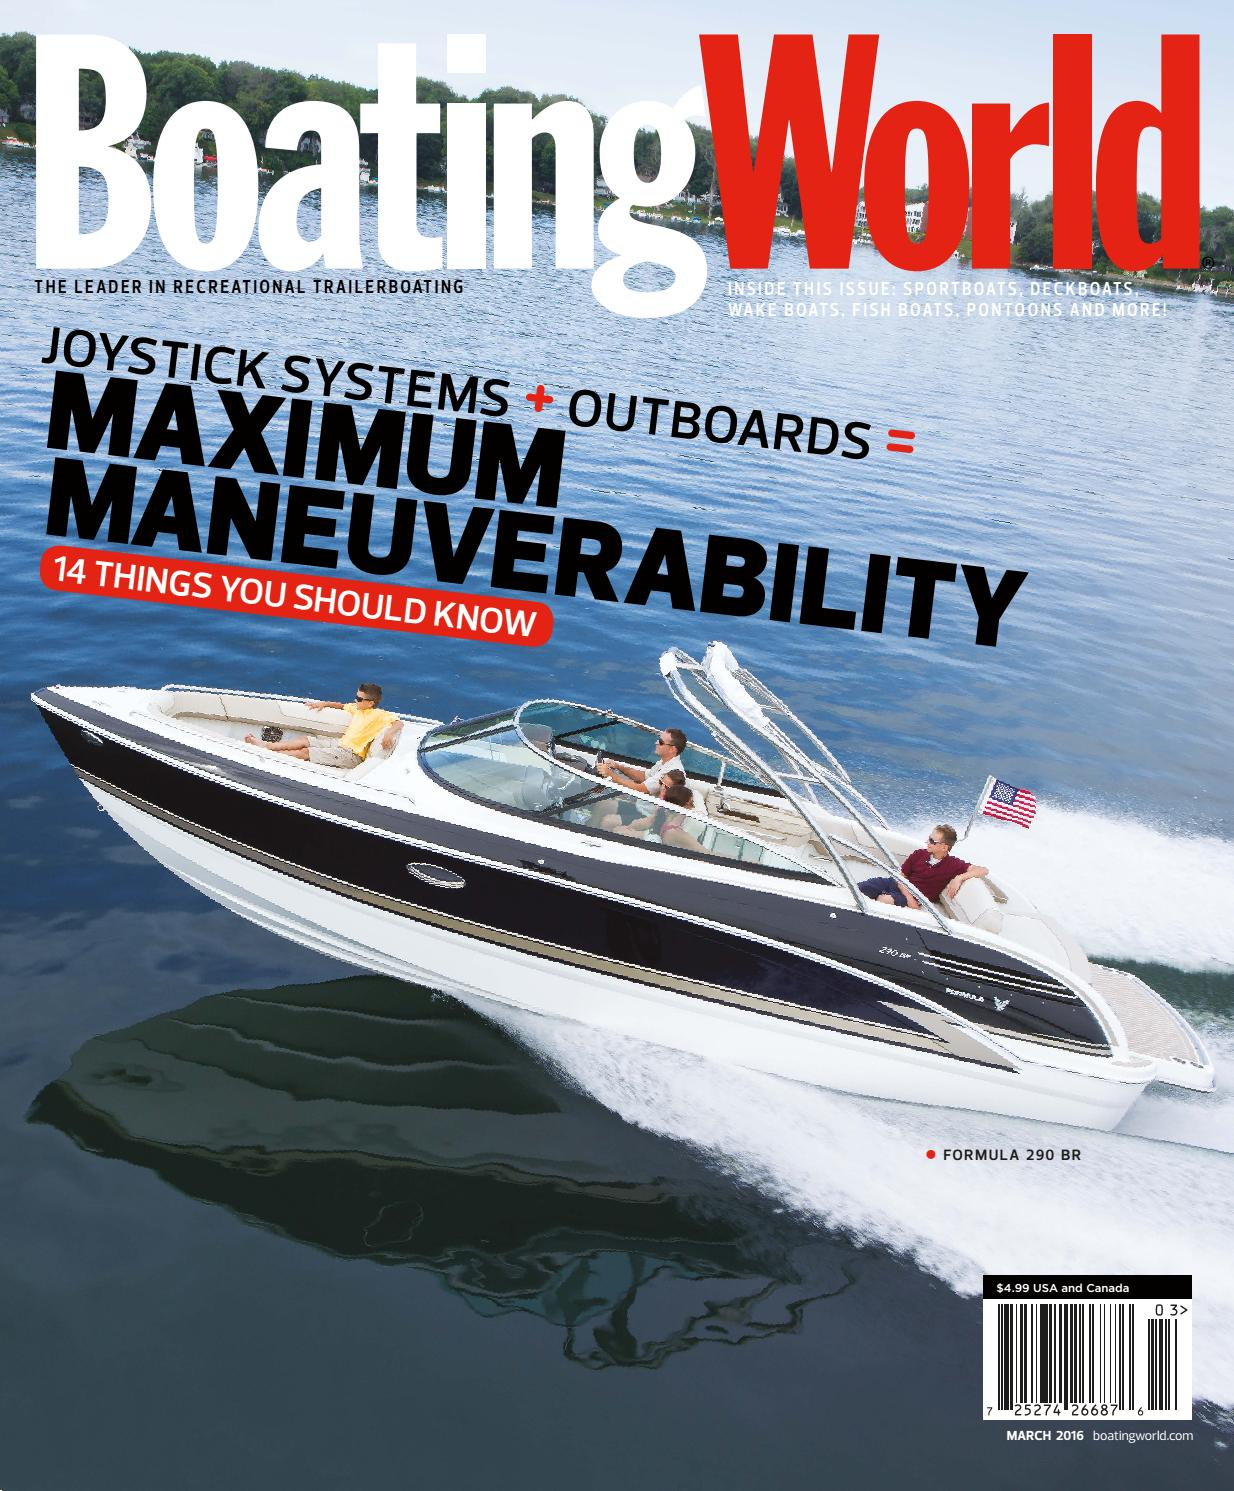 page_1 march 2016 boating world magazine by duncan mcintosh company issuu  at virtualis.co